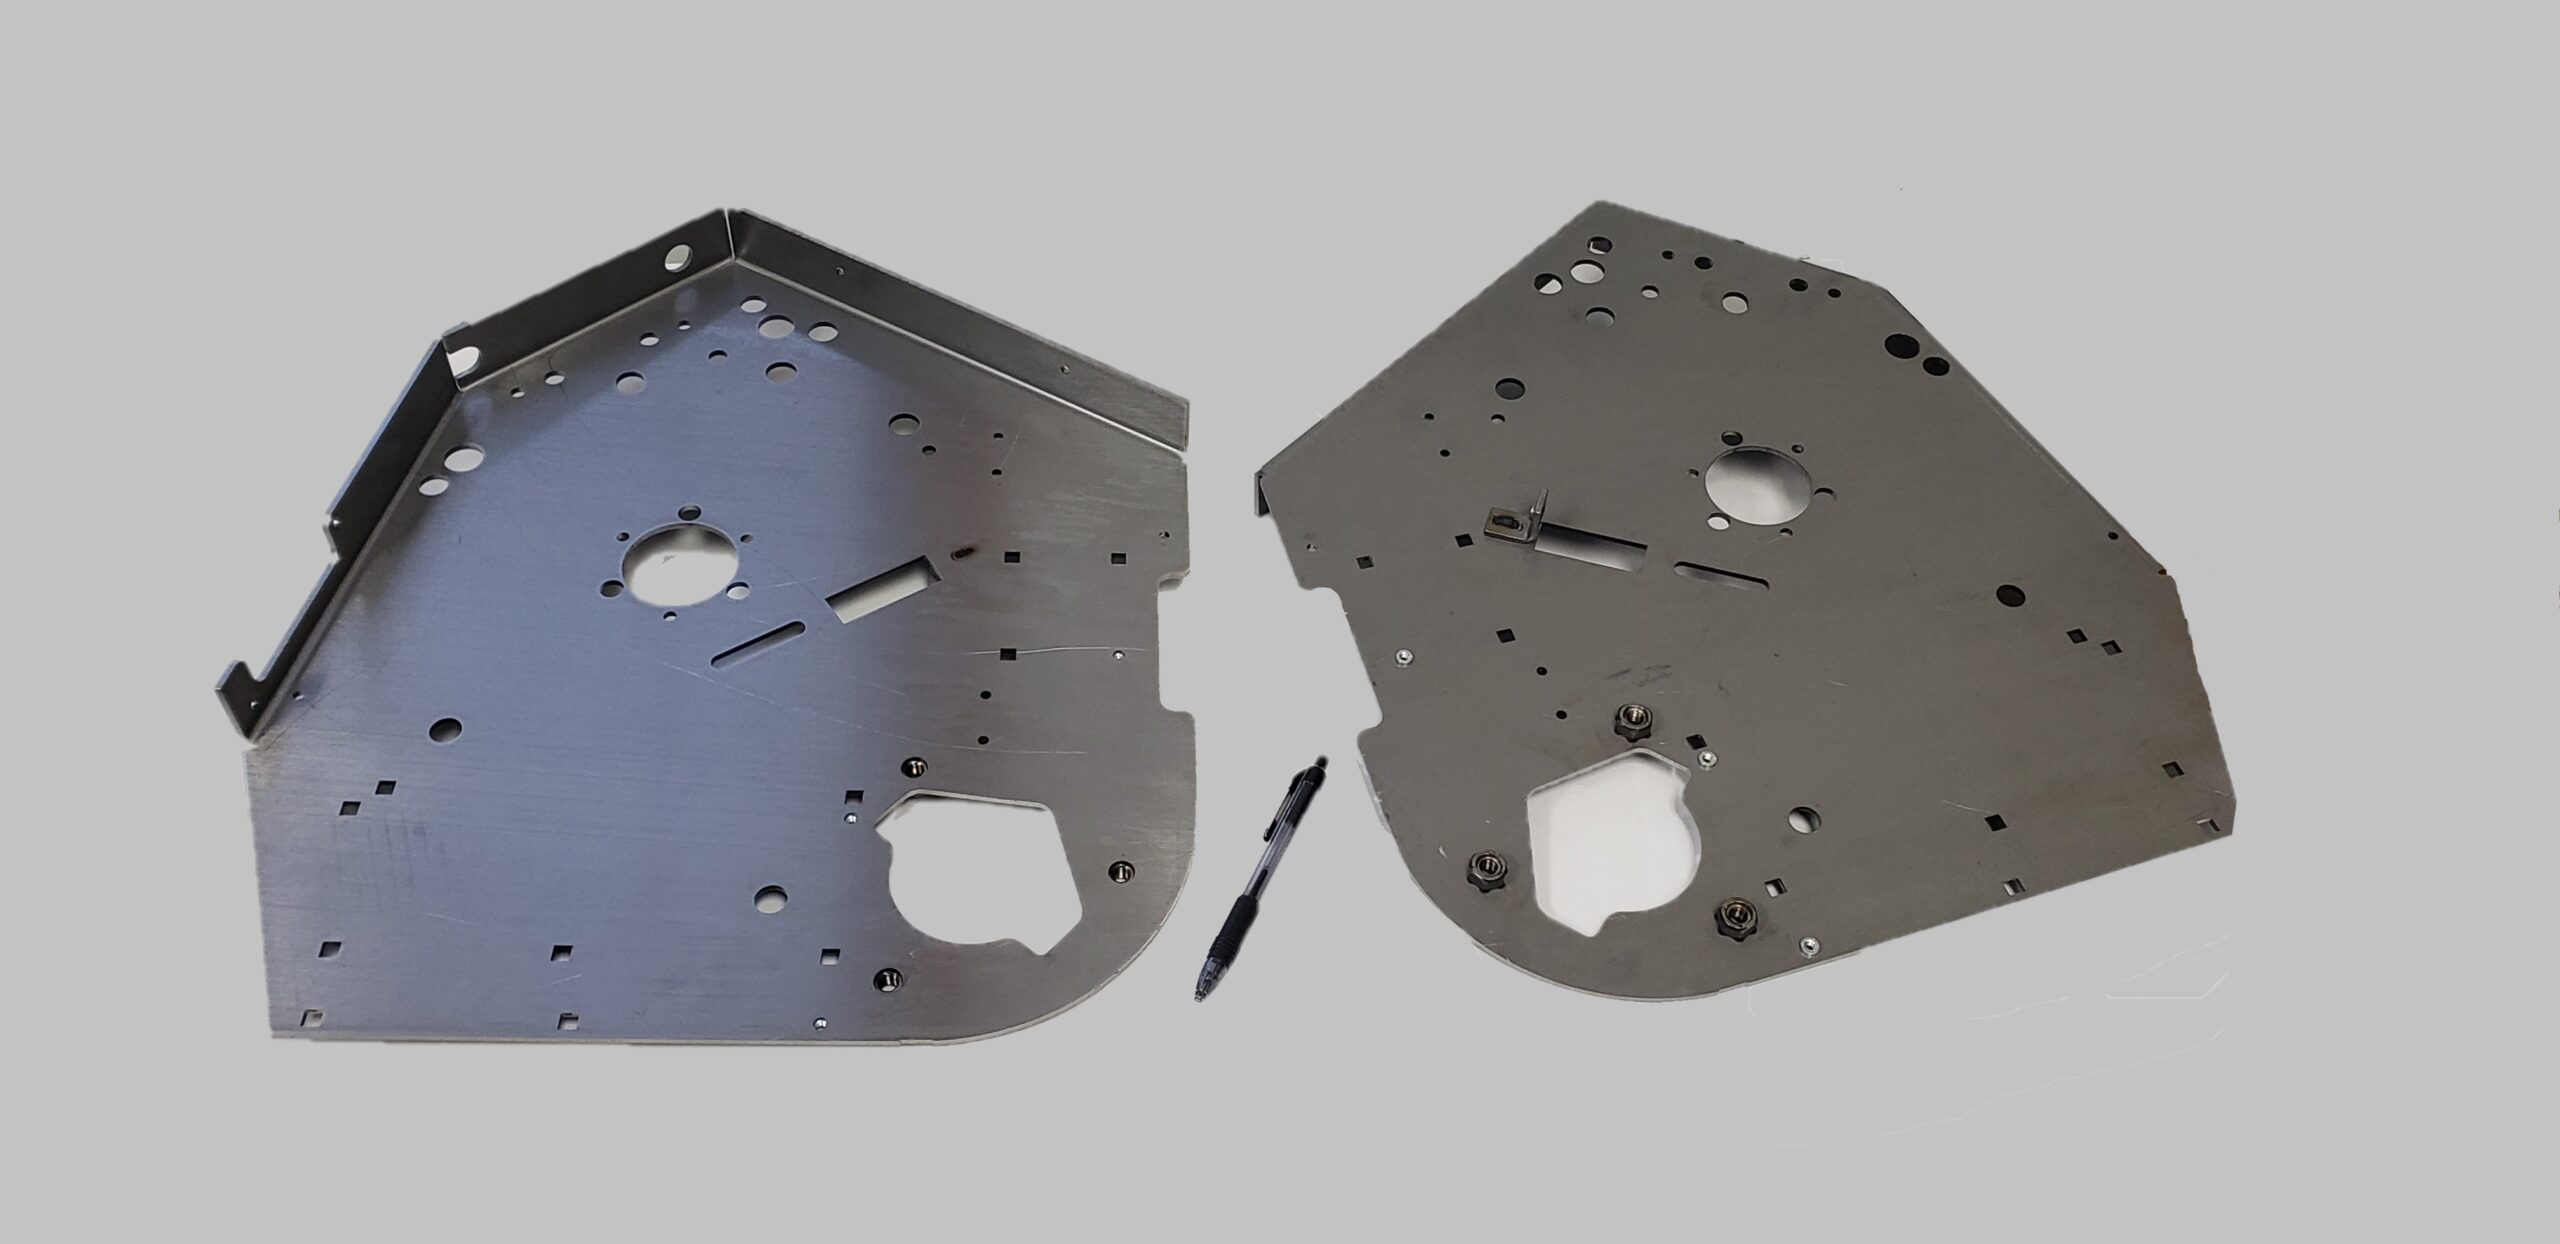 """This 20"""" X 19"""" part is made of .135 thick HSLA Grade 50 (High Strength Low Alloy) material and Clutch and Weld Nuts."""